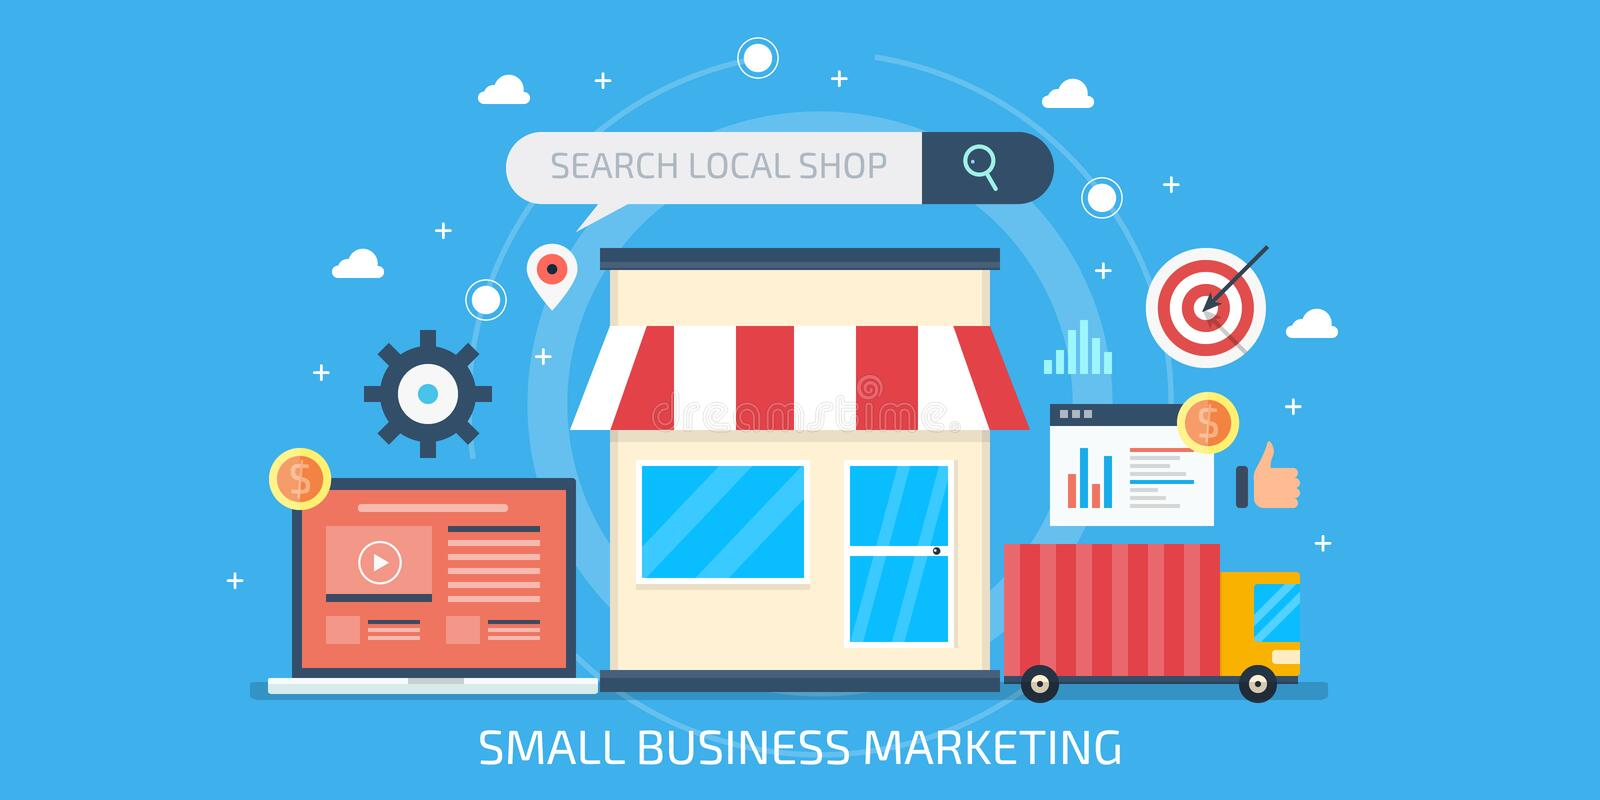 Small business marketing, local business optimization, seo marketing, internet advertisement for small shops. Flat design banner. royalty free stock image